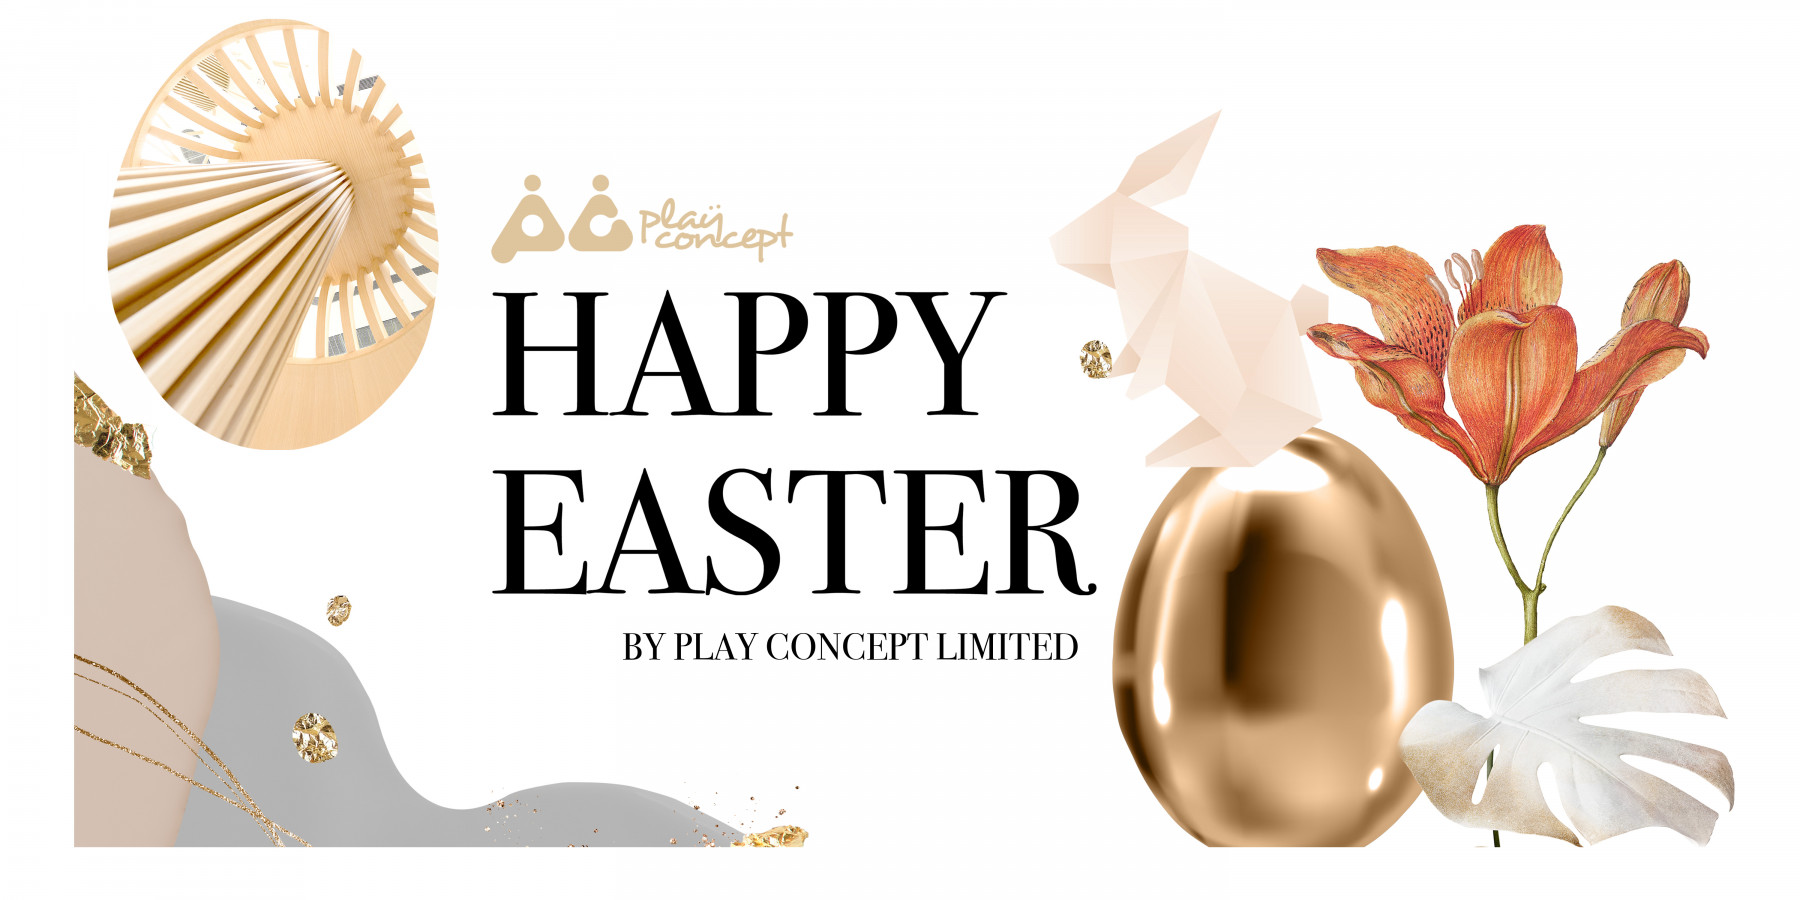 Play Concept - Play Concept wishes you a Happy Easter - 1